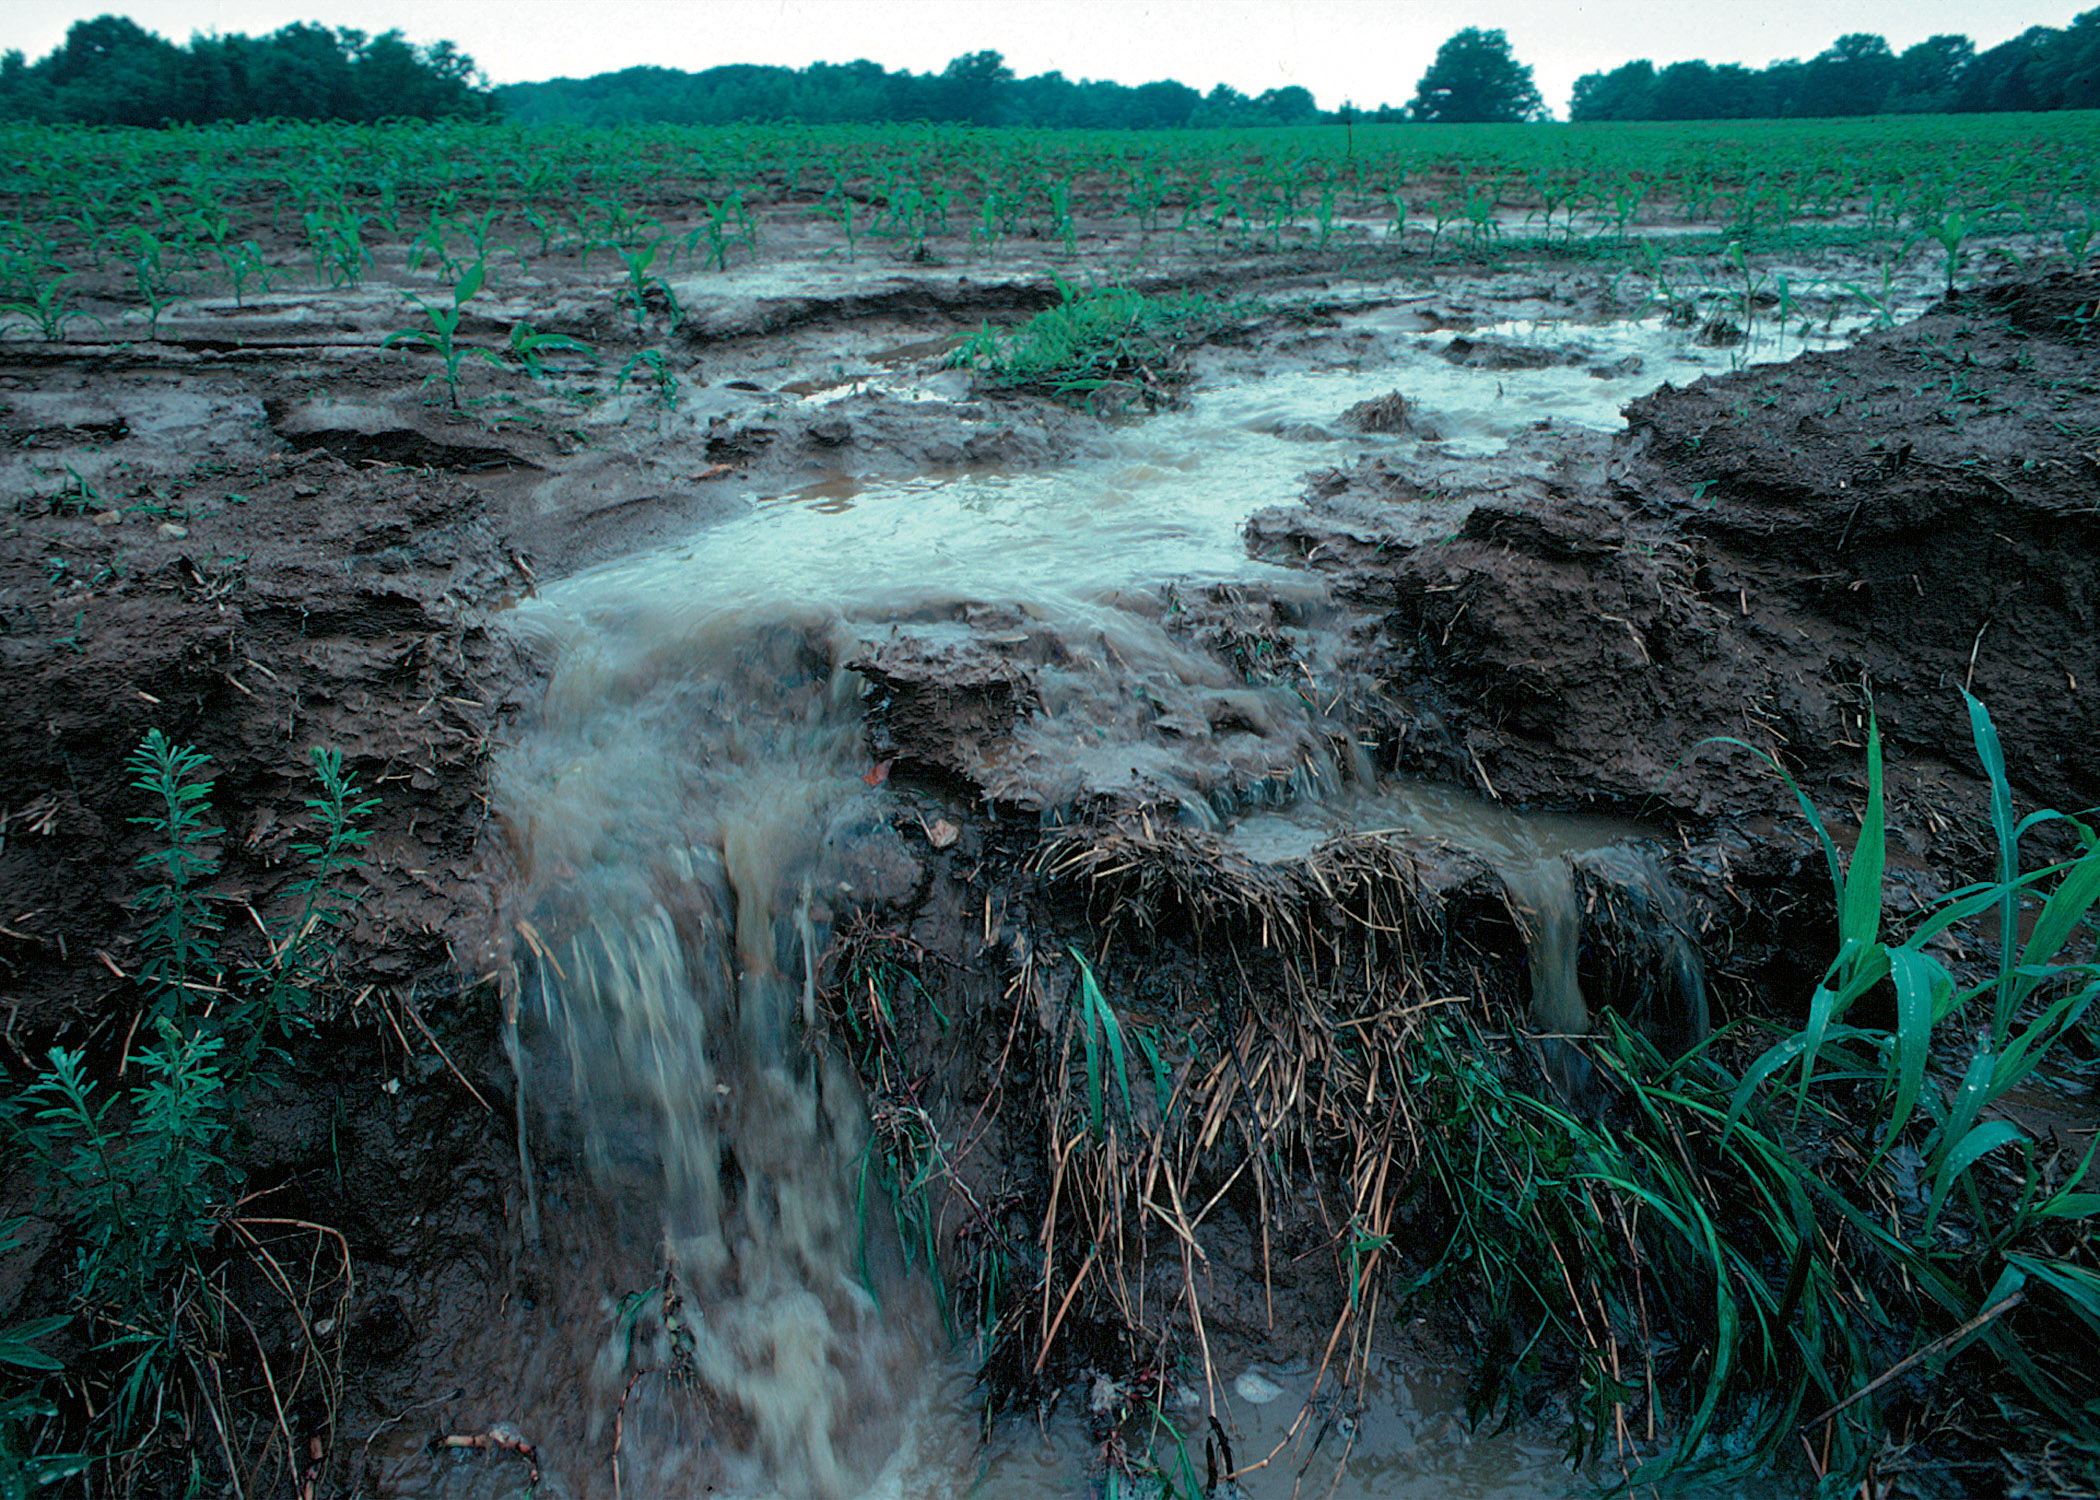 Water pours, from fields of green crop in the background, down a muddy bank towards the foreground